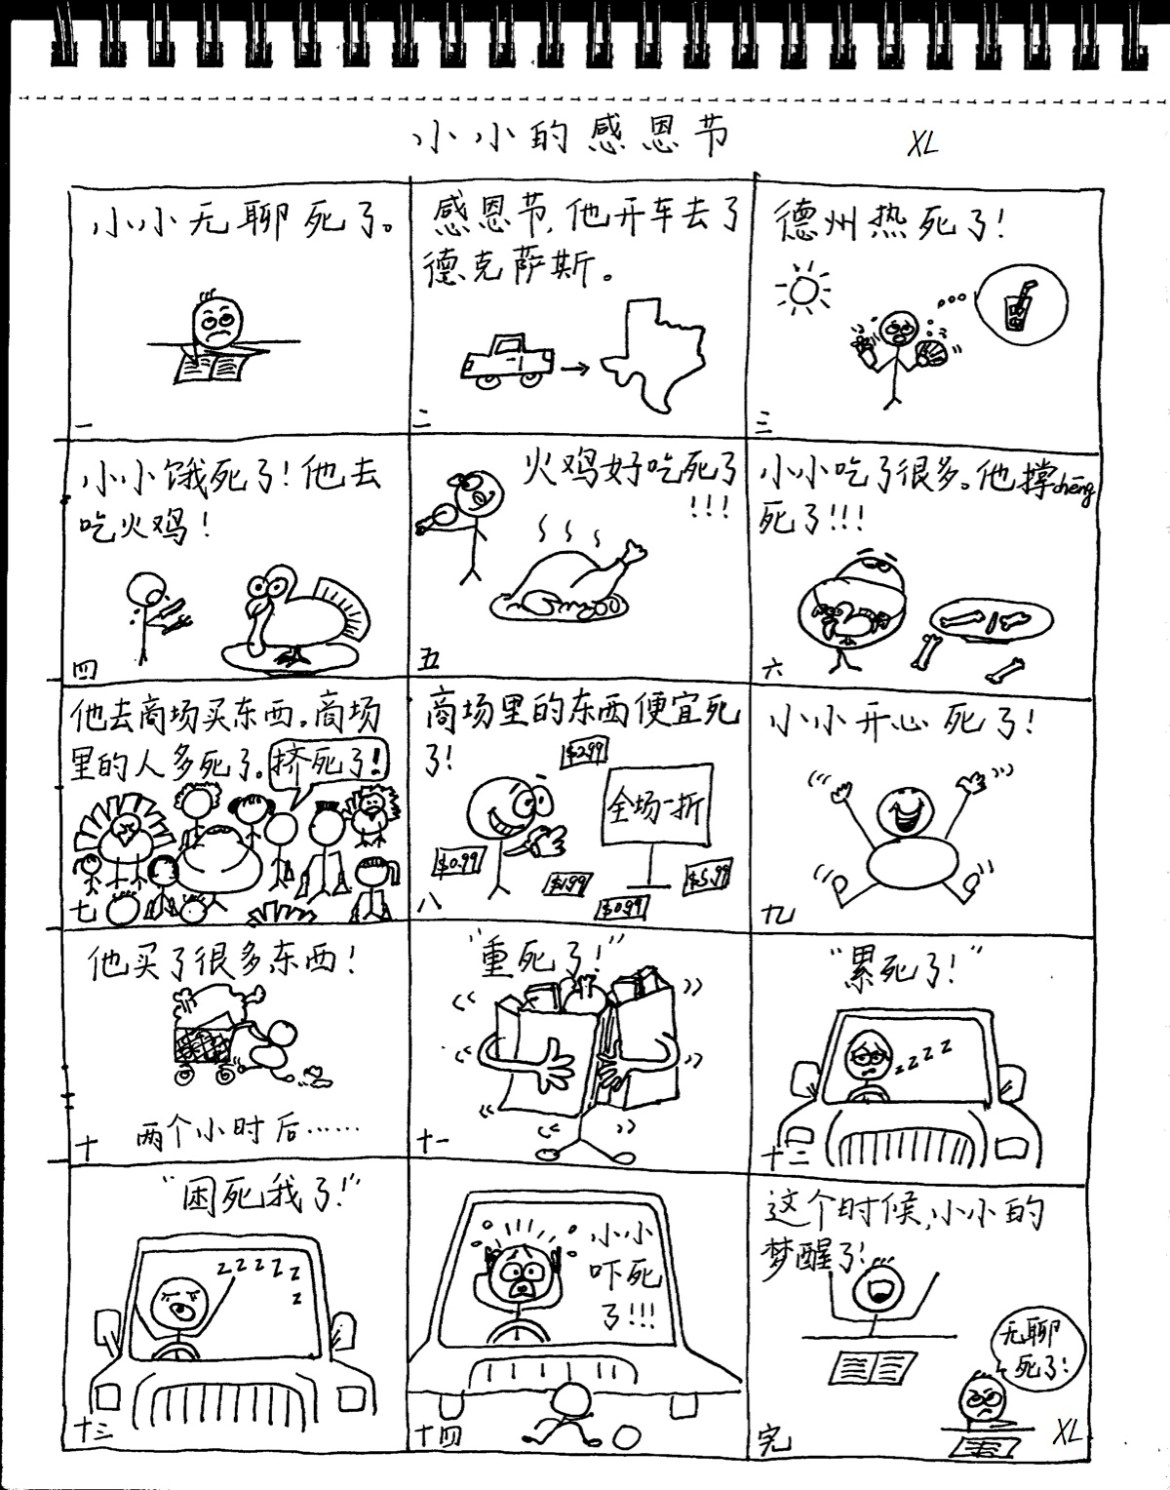 xian_lu_comic_strip_for_cfl_samples6